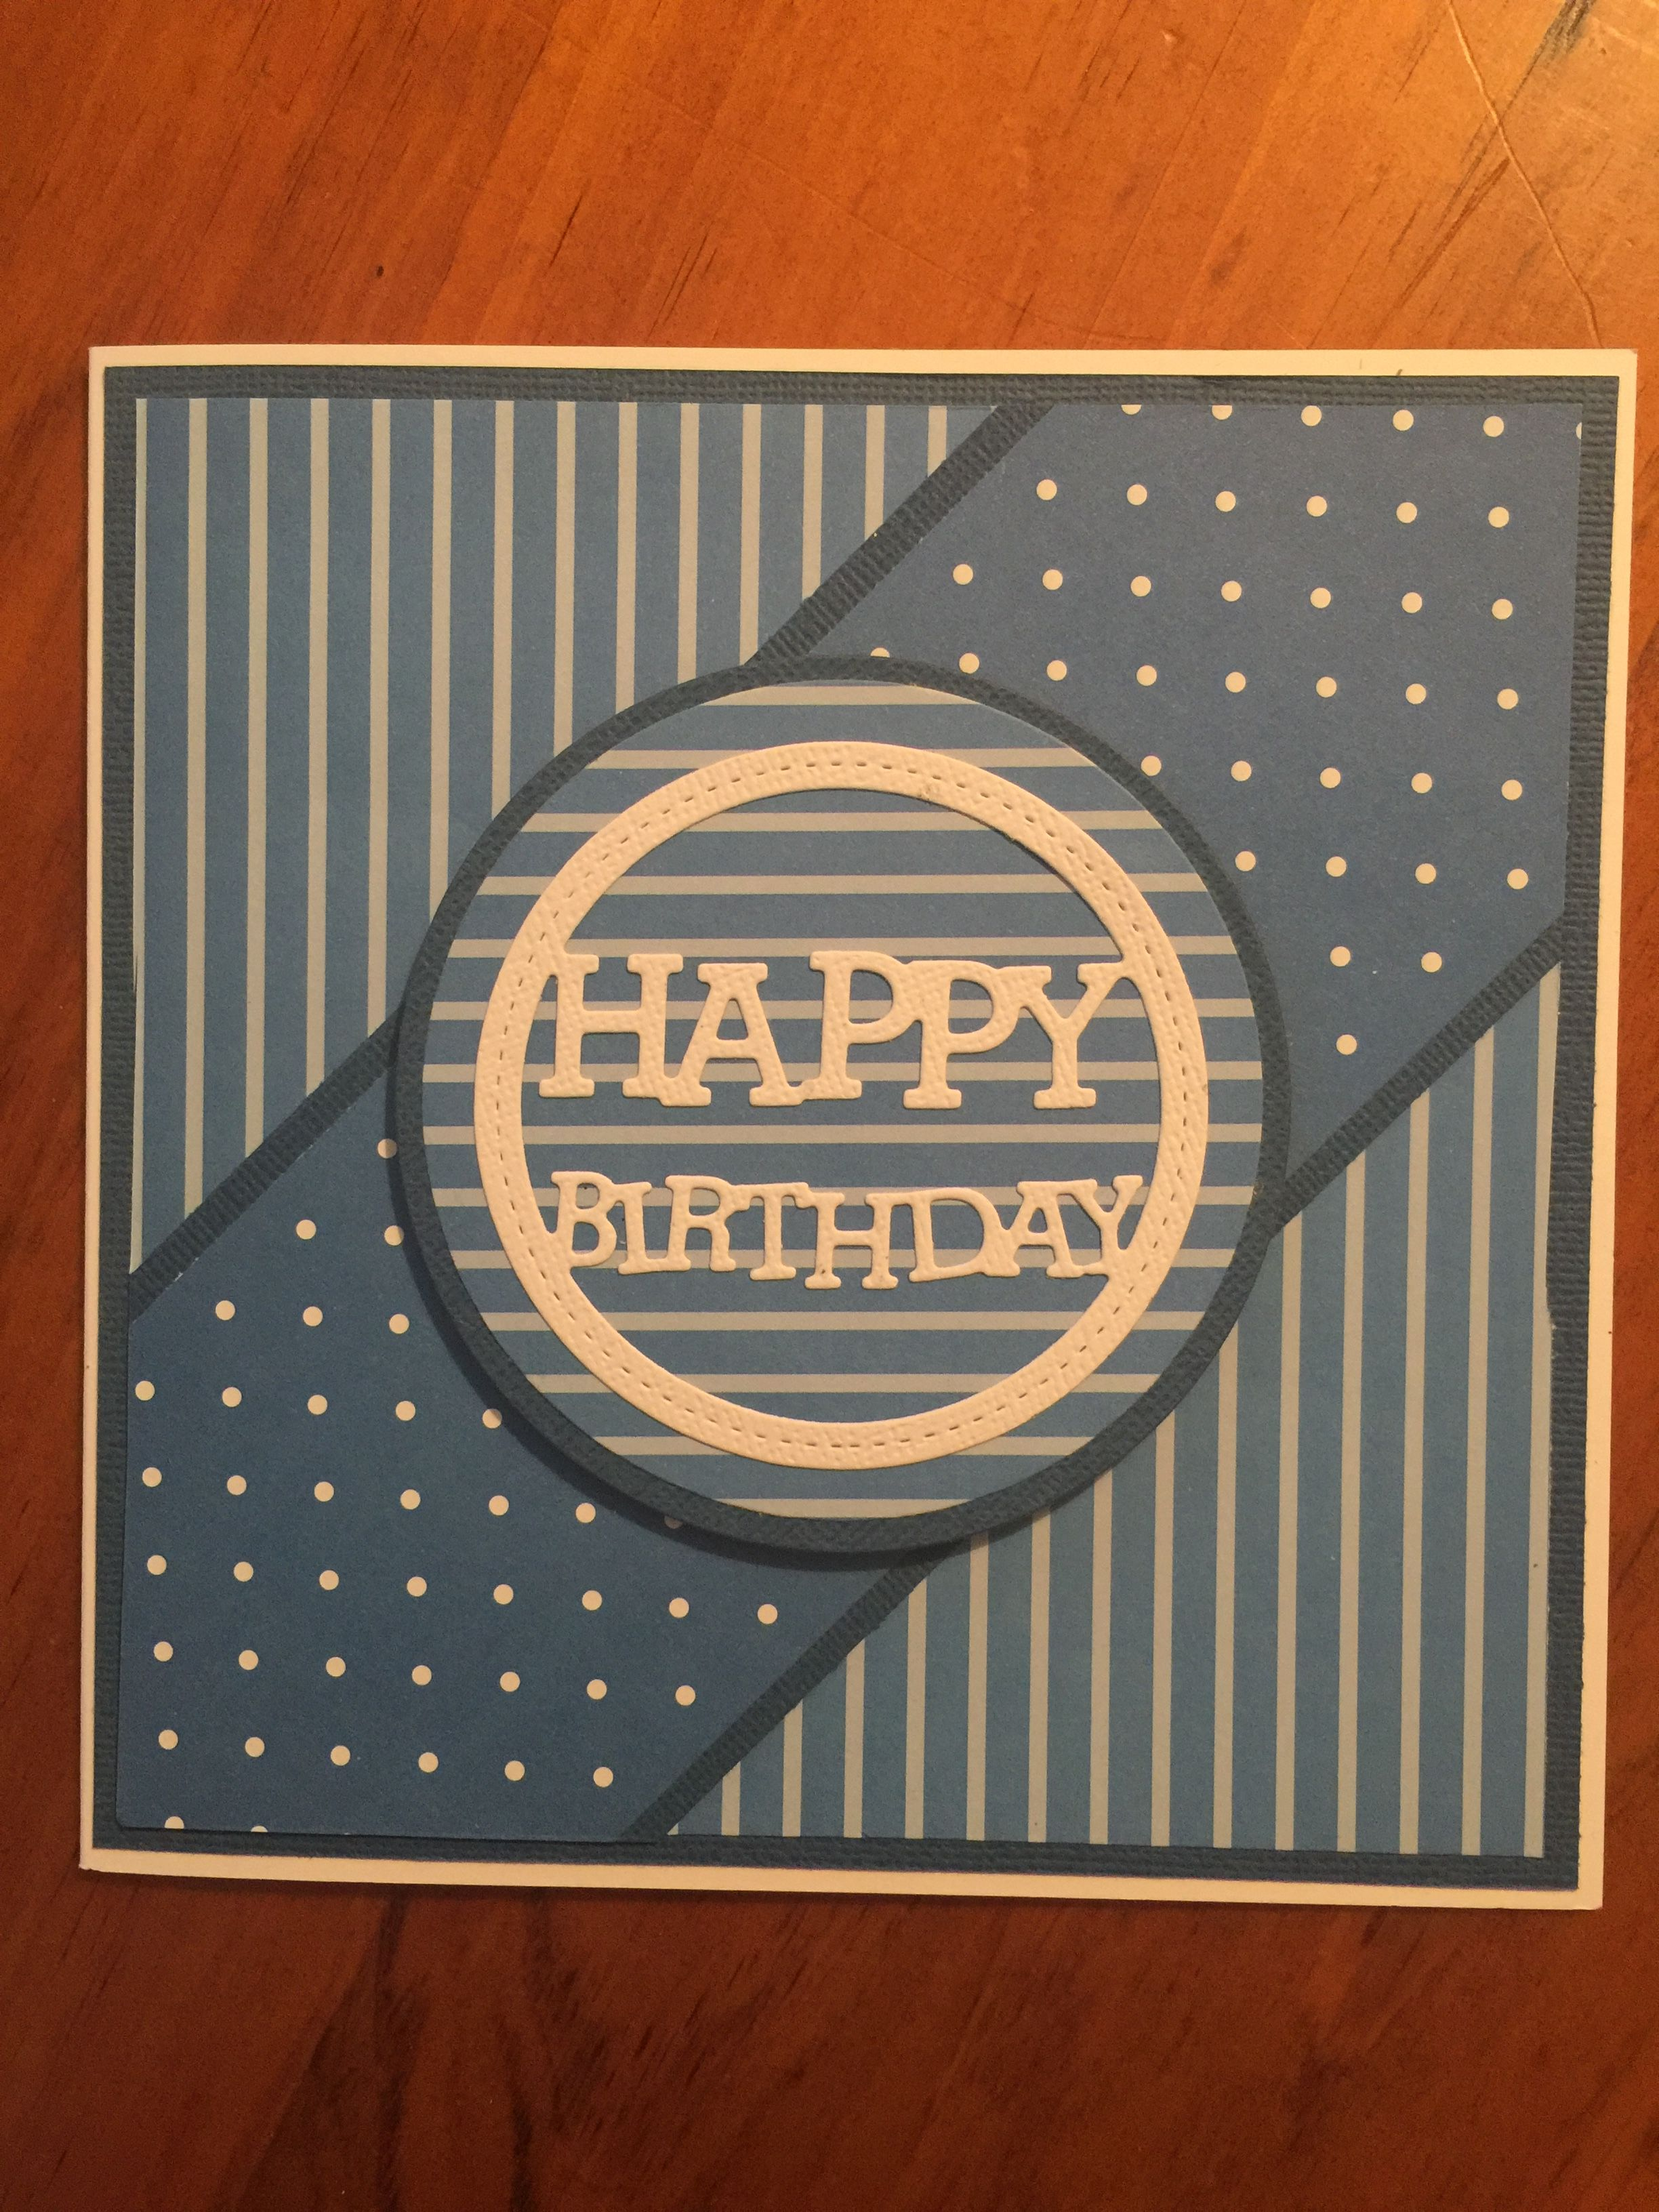 Masculine birthday card Birthday cards for men, Cricut